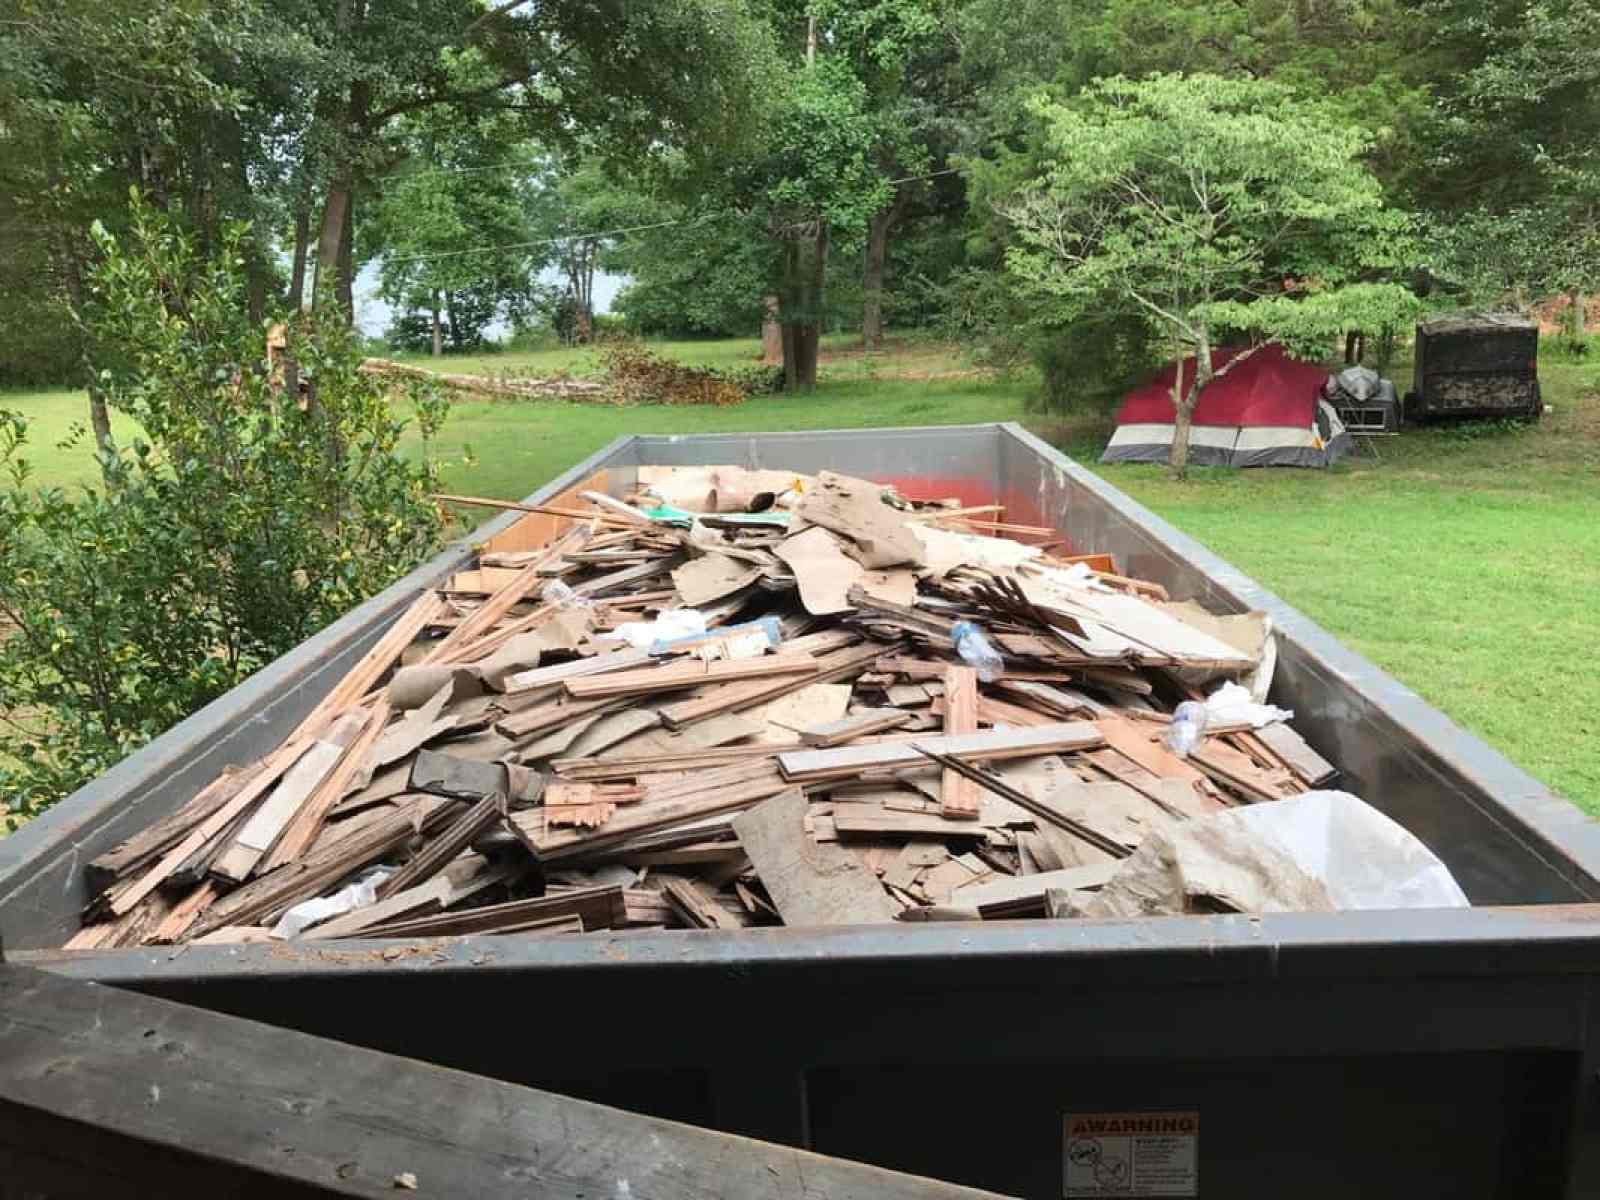 dad's house home remodel dumpster full